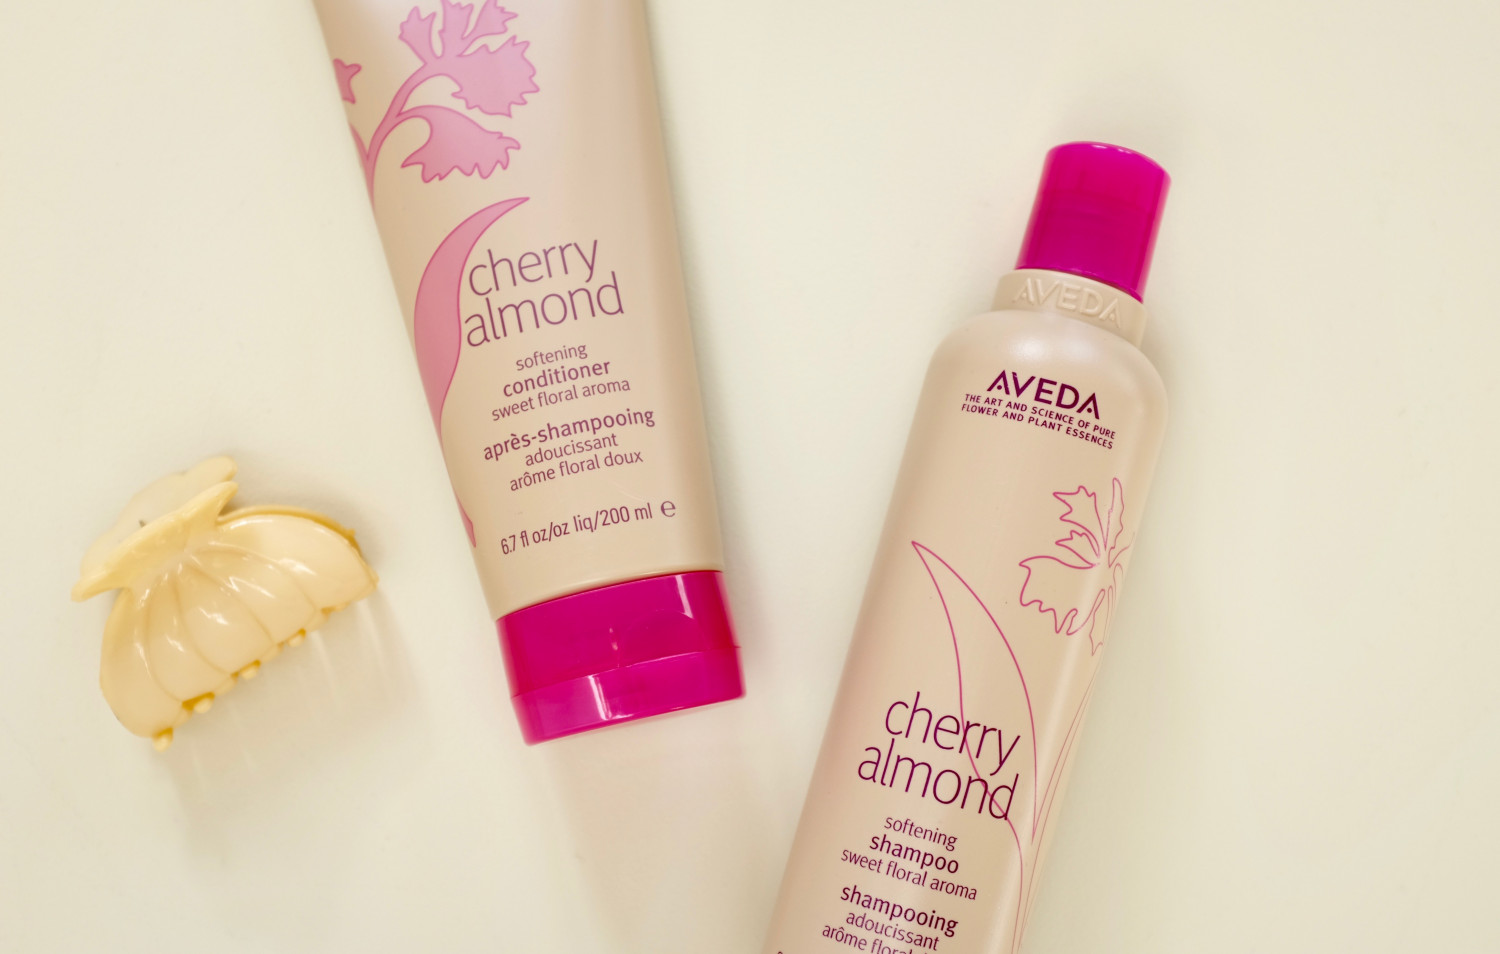 Cherry Almond Hair Care From Aveda